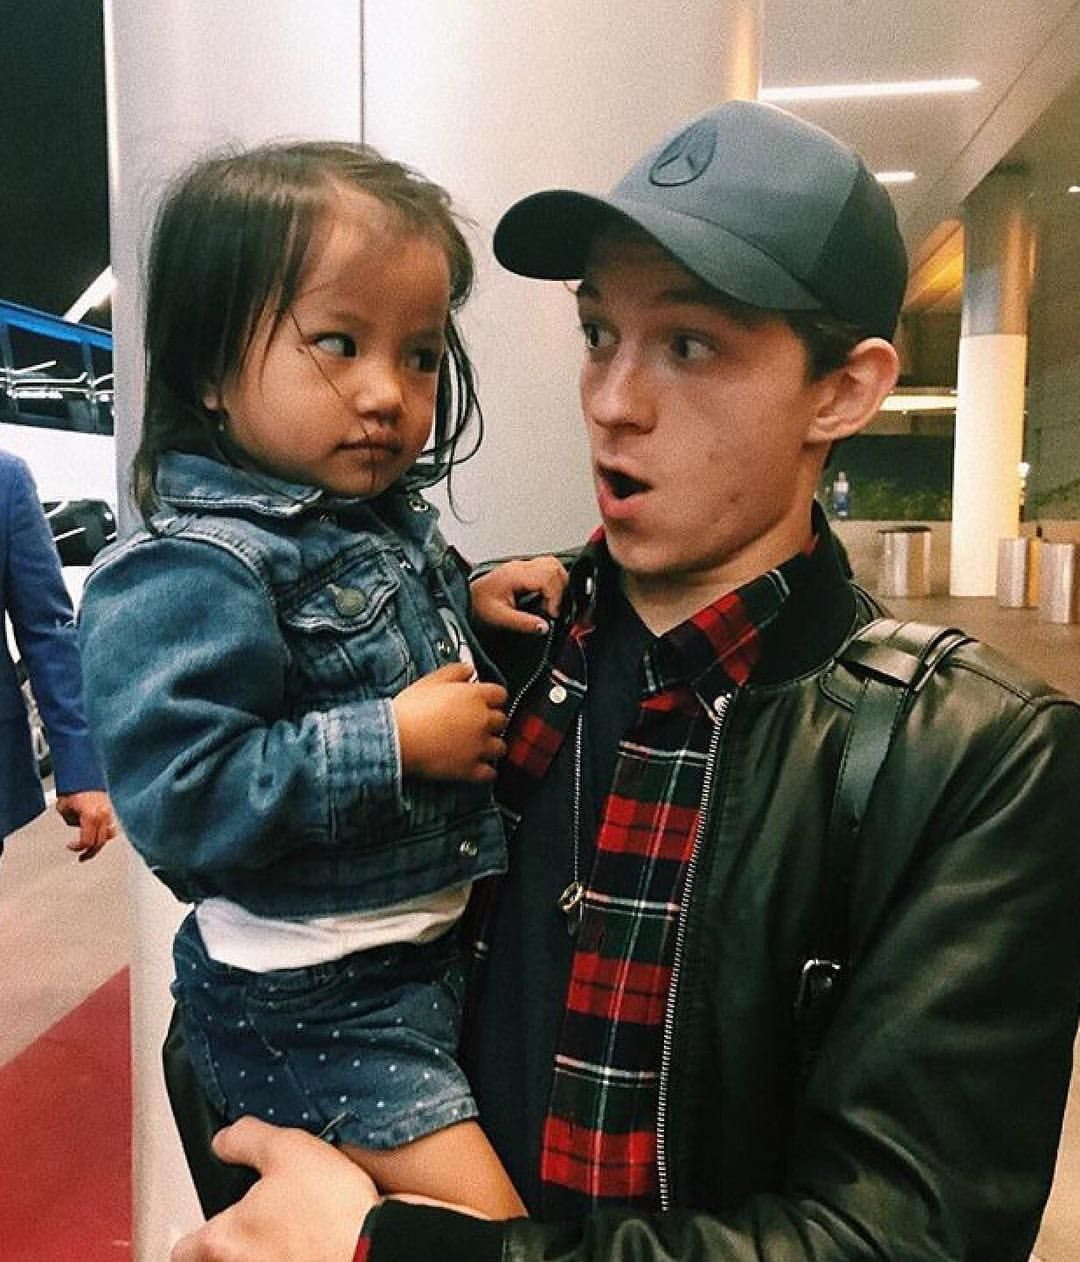 Oh. My. GOD!!! He'd be such a good dad